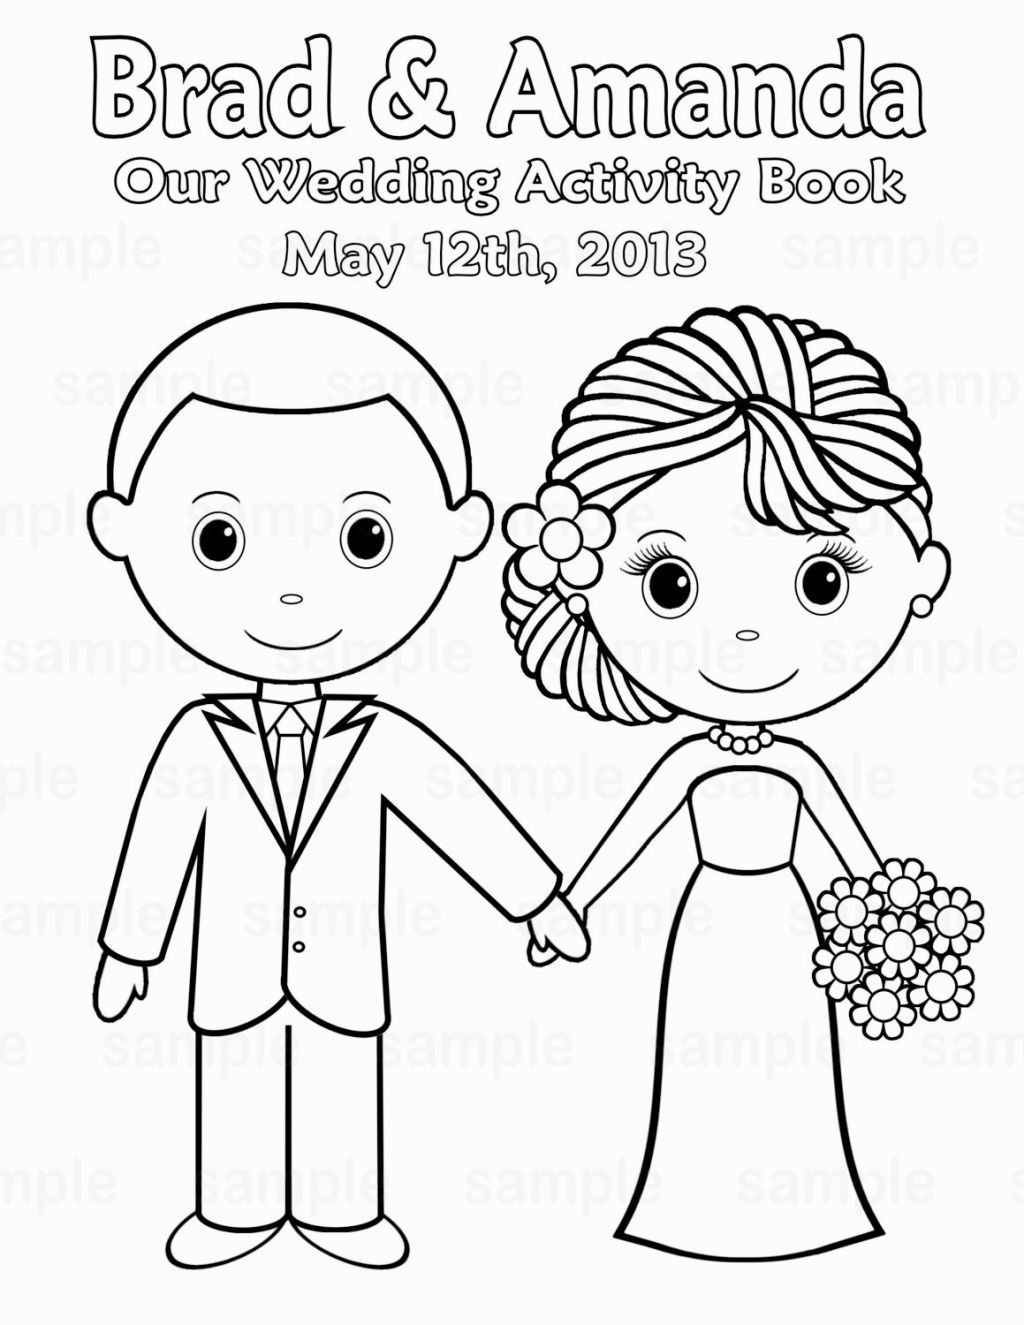 Wedding Coloring Book Printable | Coloring Pages in 2018 | Pinterest